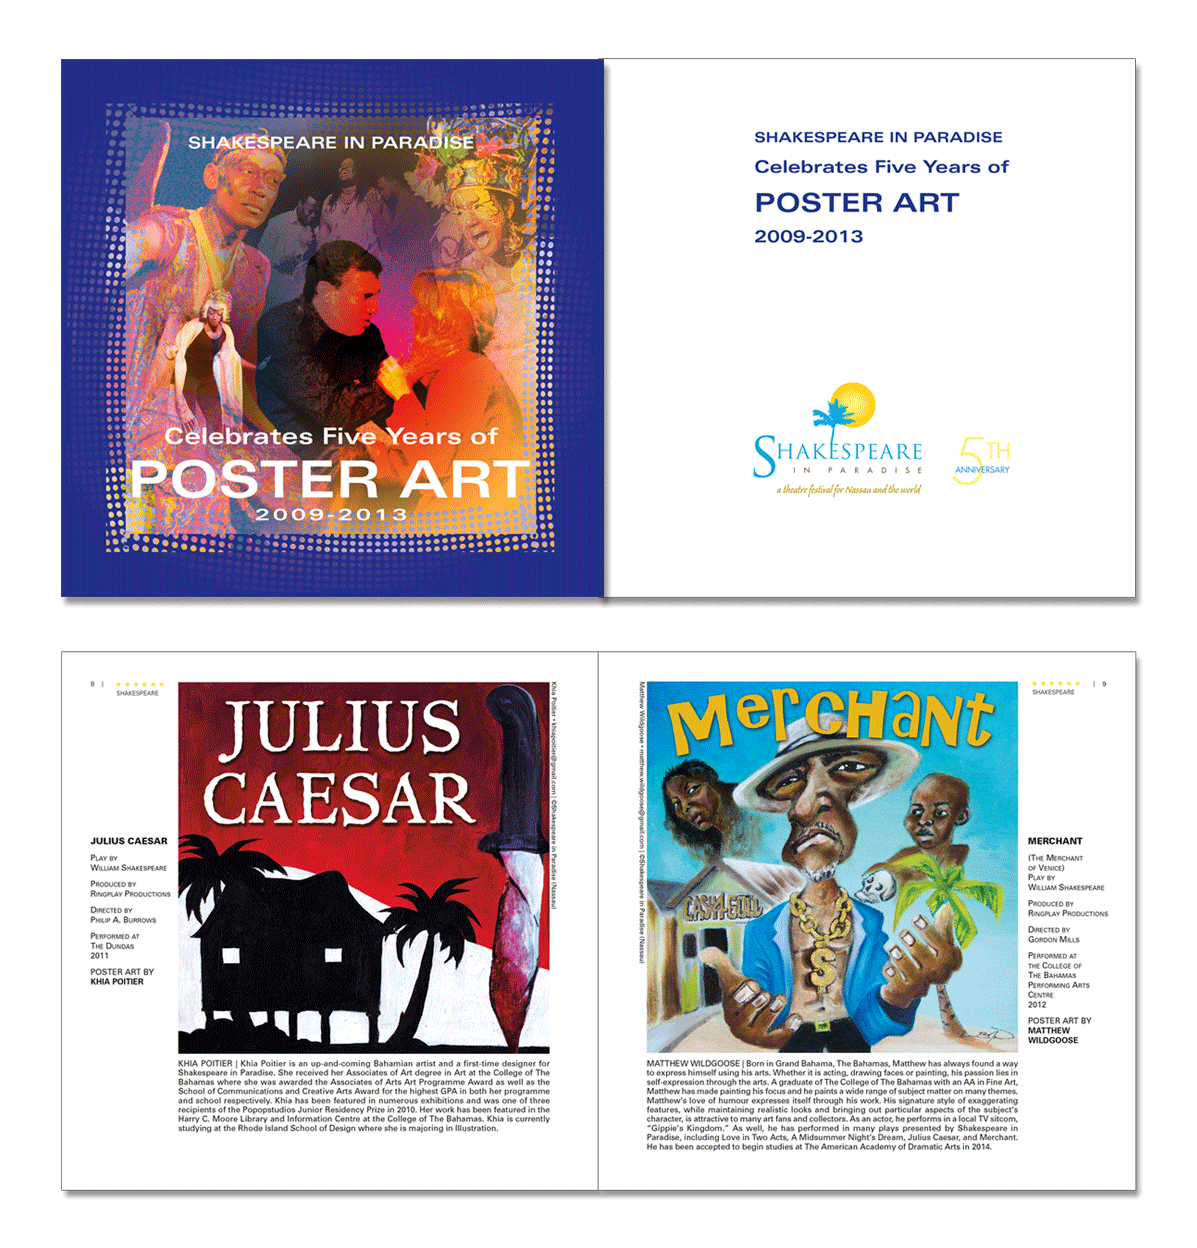 Exhibition catalog for poster art